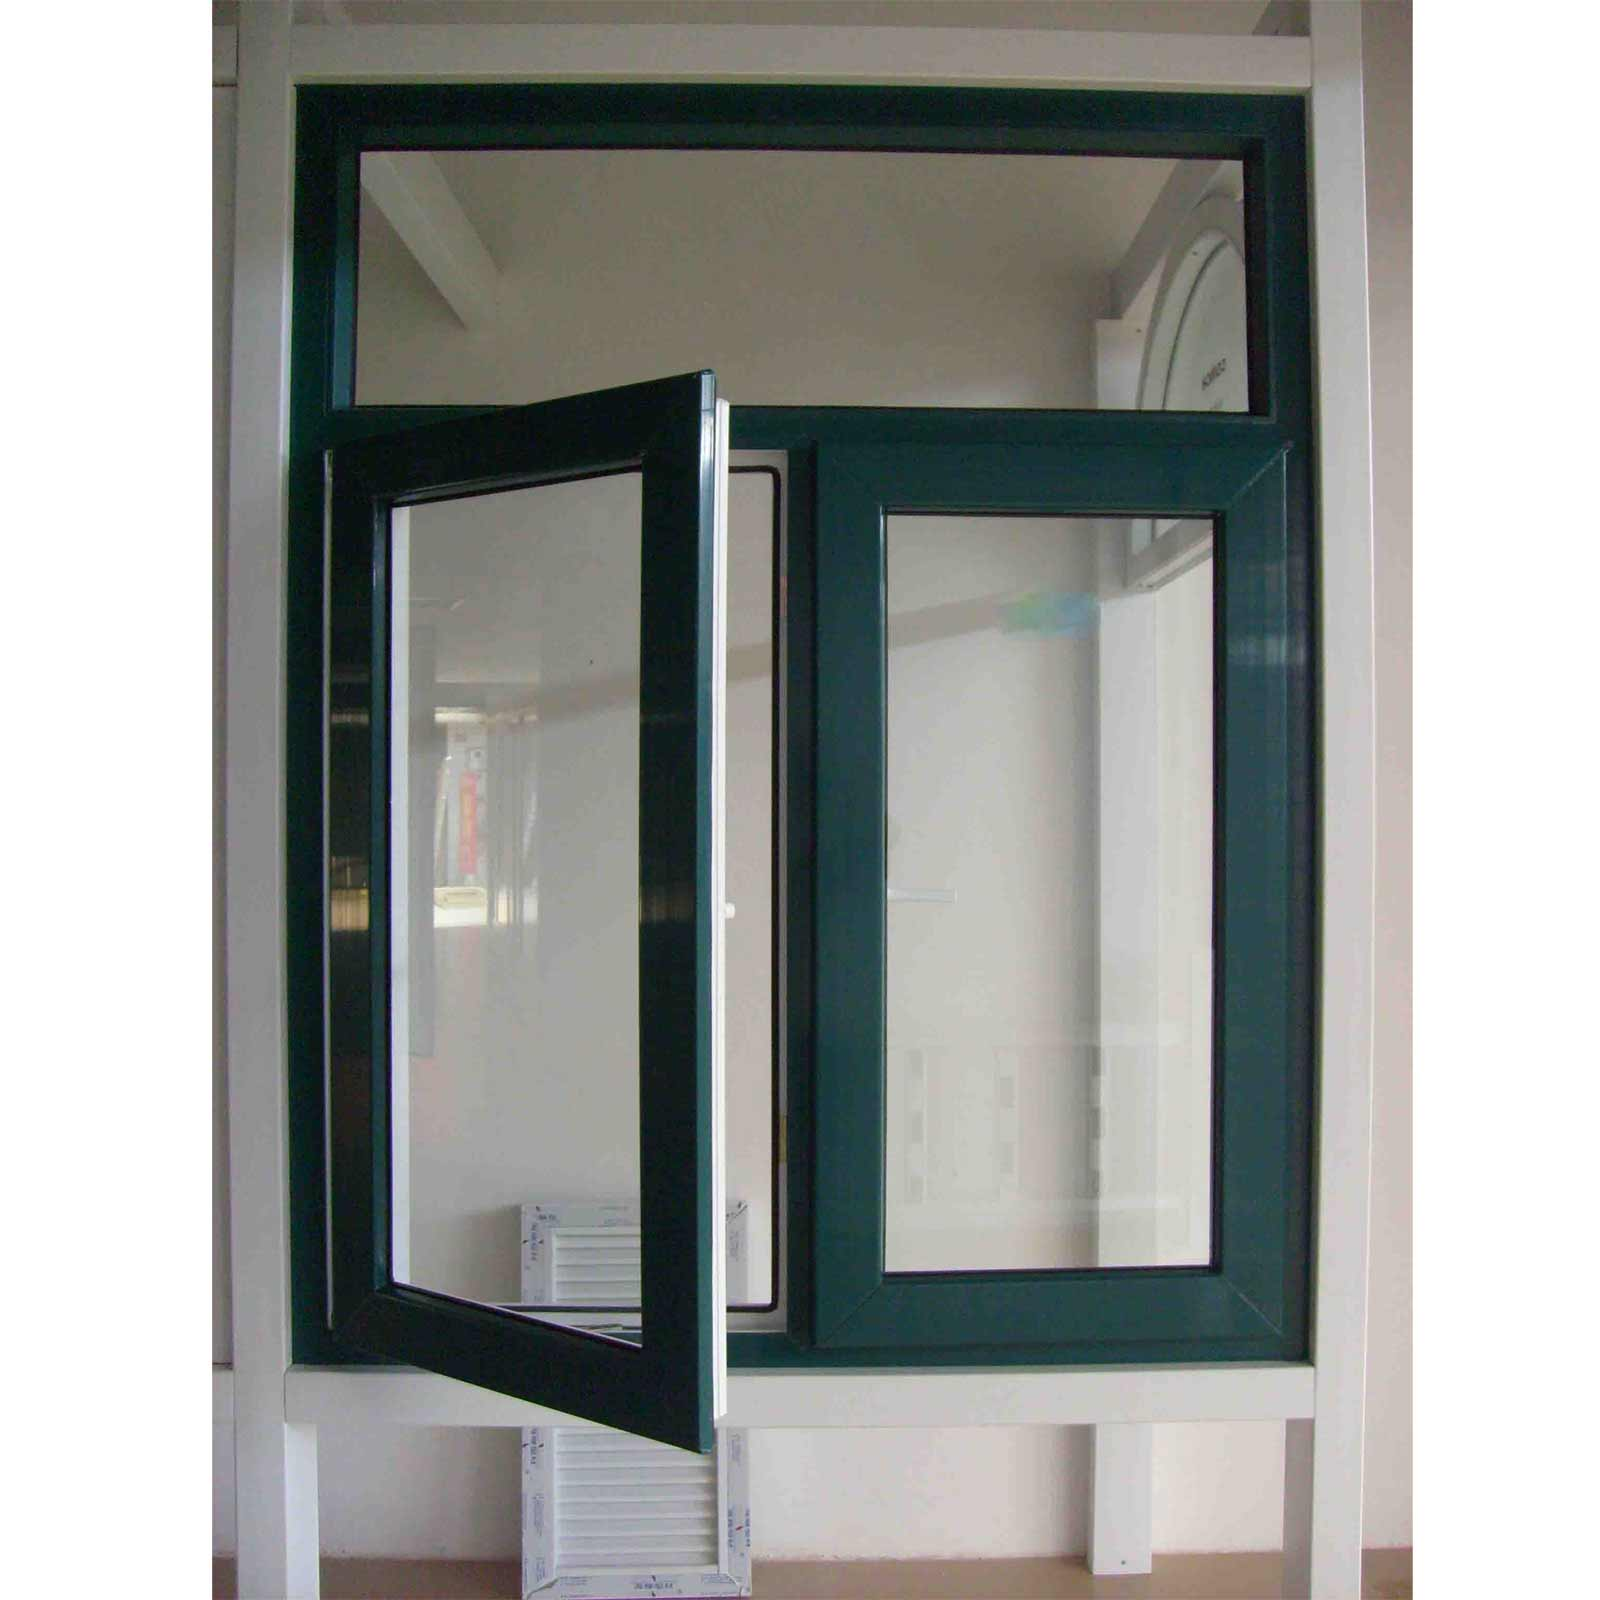 1600 #1A2B2B Pin Windows And Doors On Pinterest pic Window And Doors 45311600